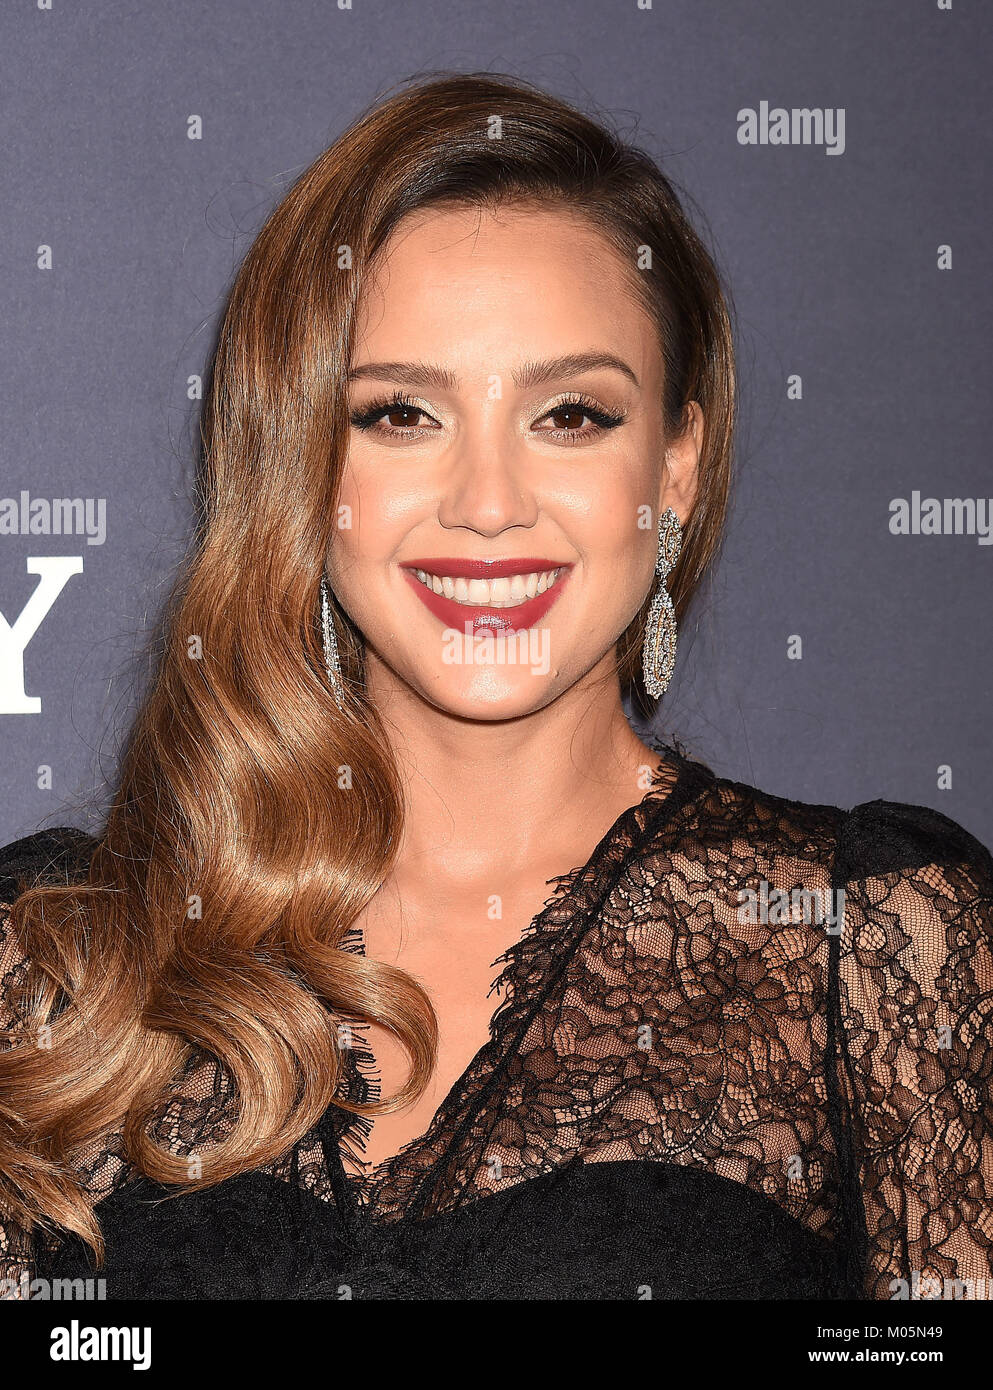 JESSICA ALBA US film actress  attends the 2017 Baby2Baby Gala at 3Labs on November 11, 2017 in Culver City, California. - Stock Image